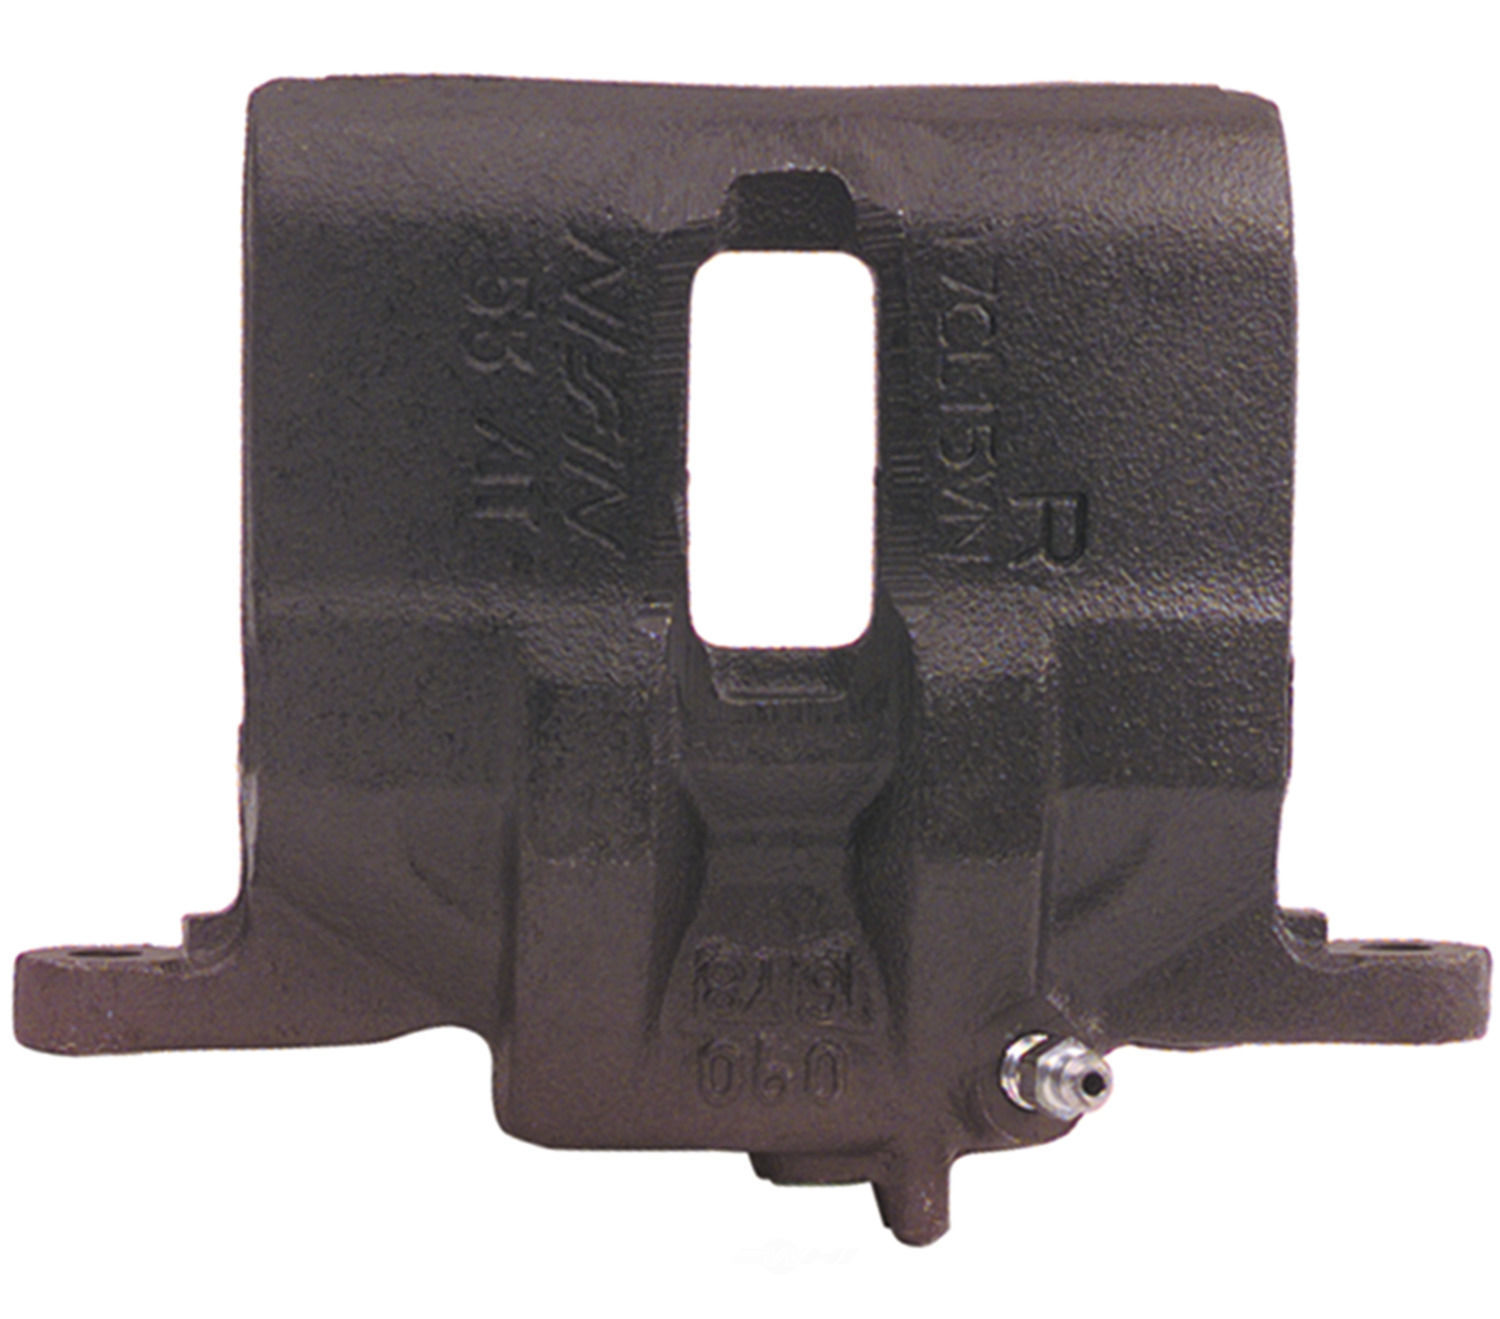 CARDONE/A-1 CARDONE - Reman Friction Choice Caliper (Front Right) - A1C 19-1460